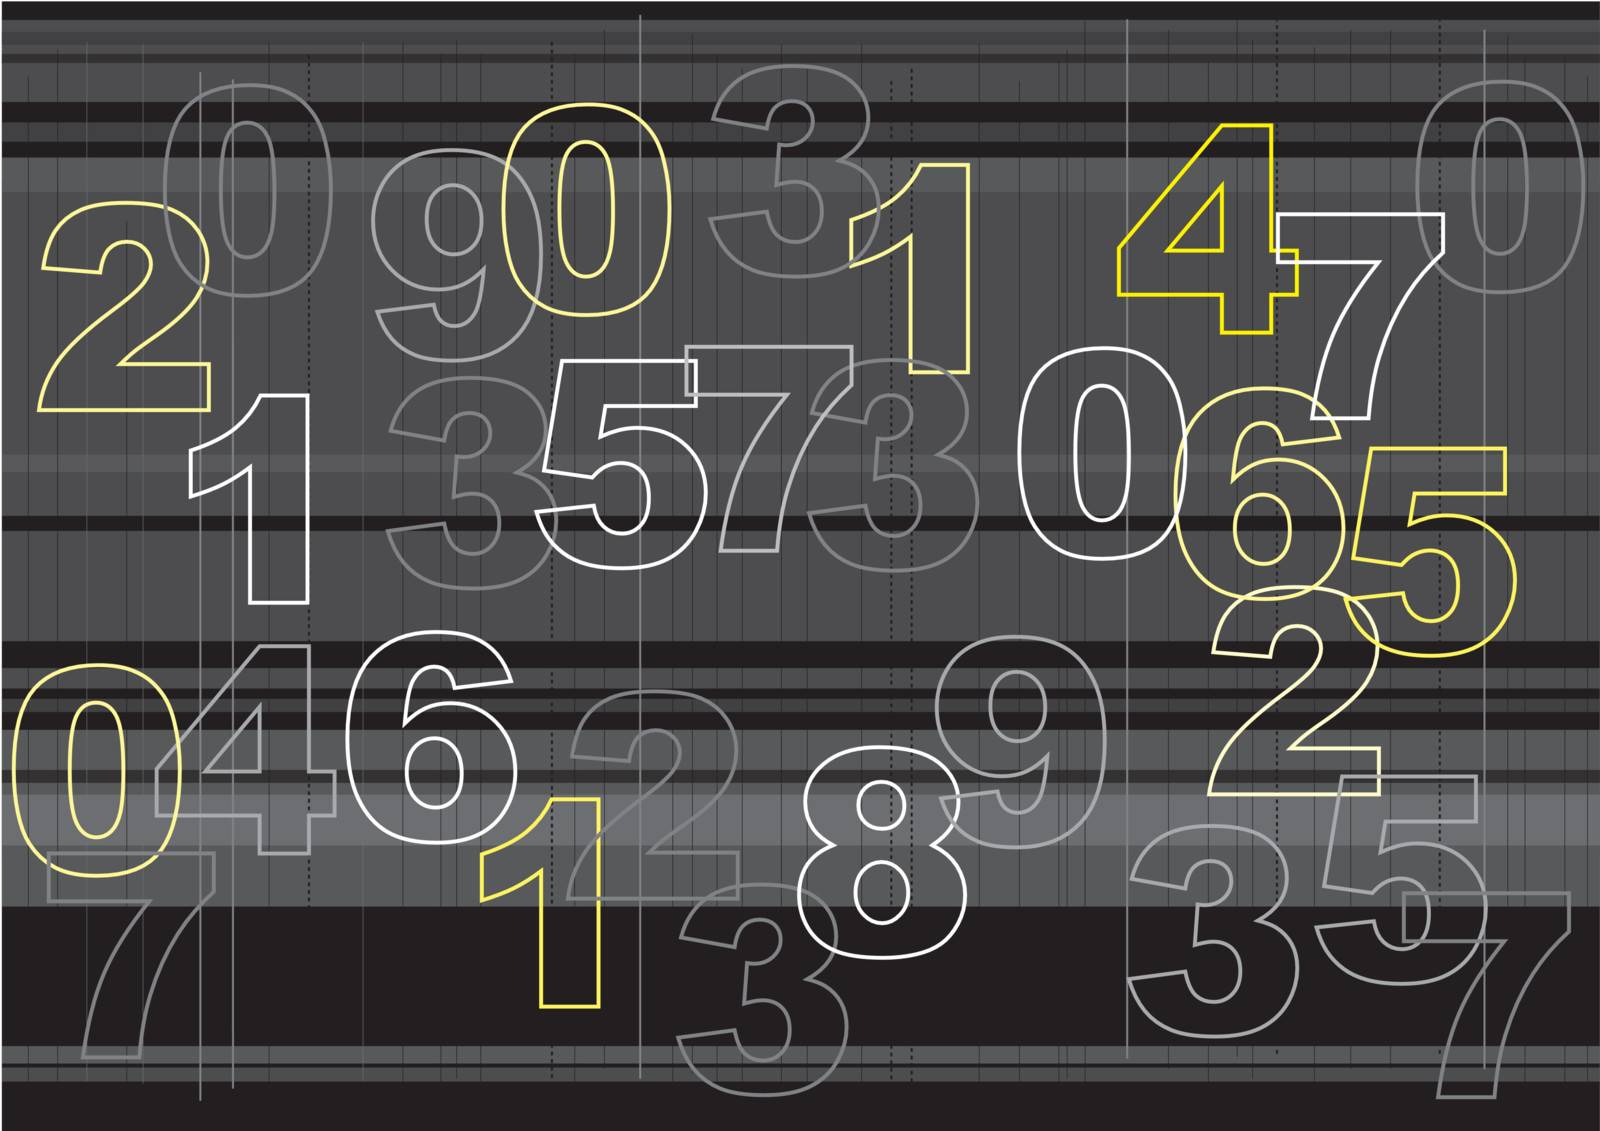 Graphic illustration of outlines of overlapping numbers